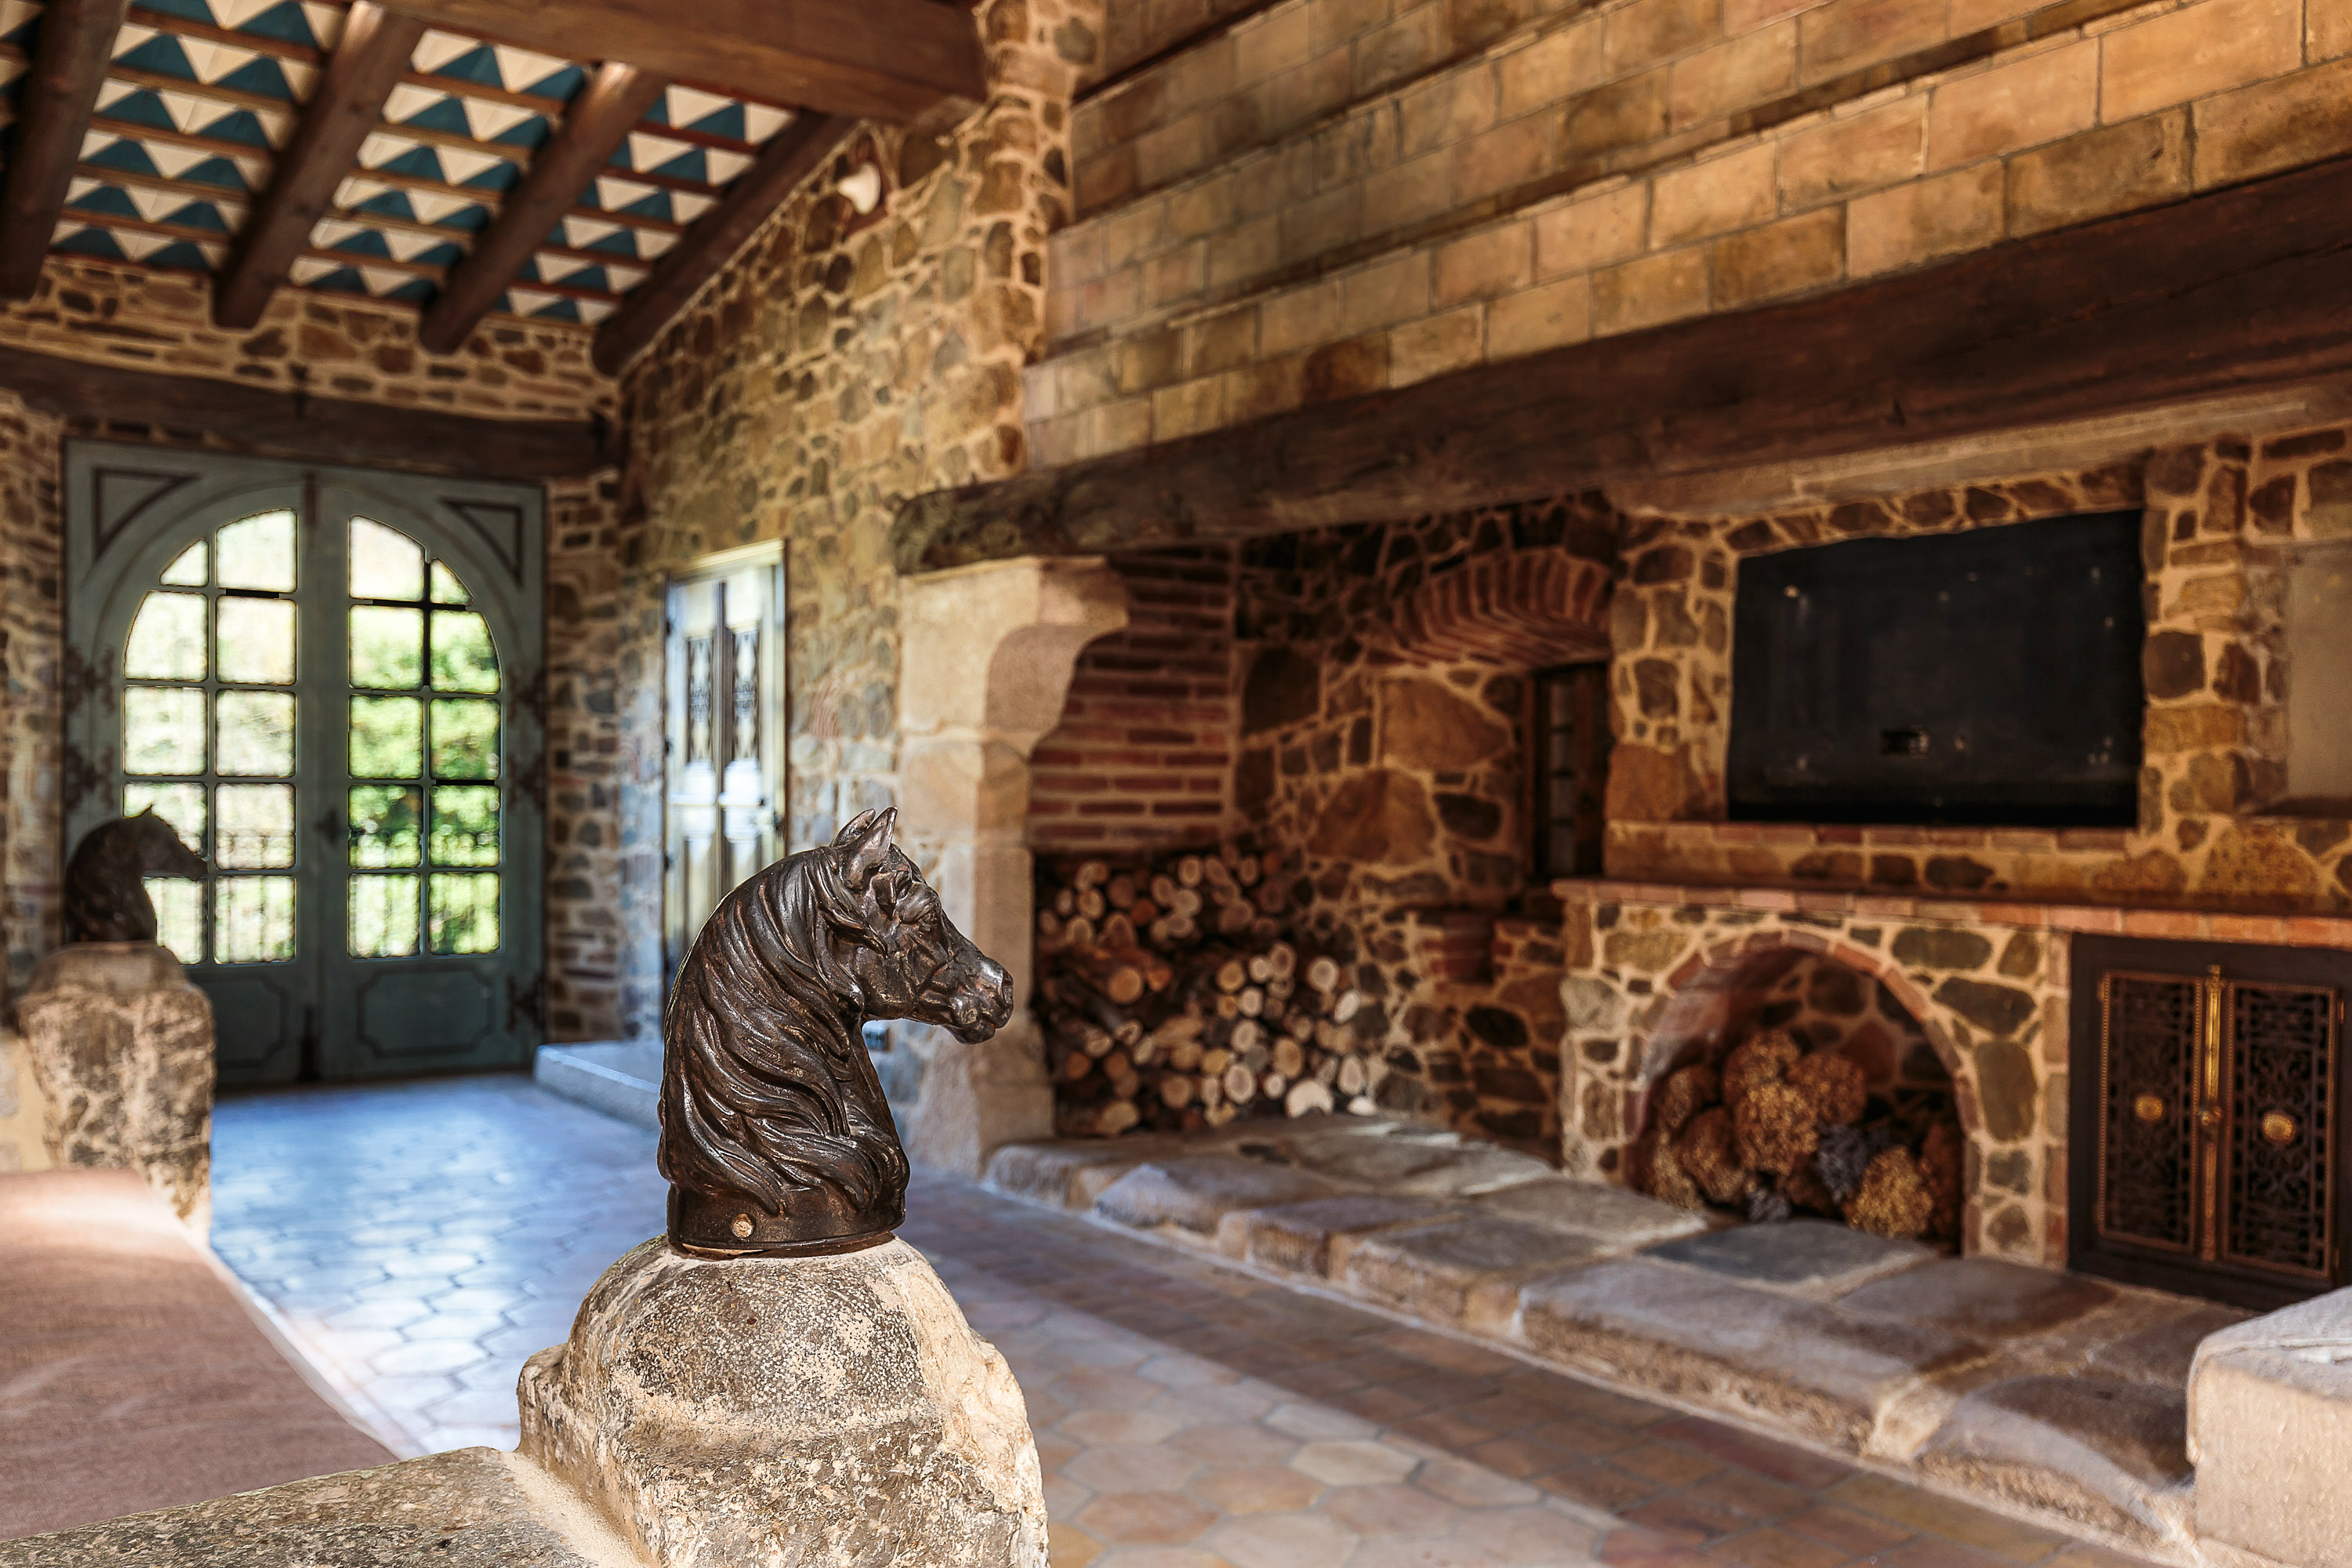 Exposed stone walls and wooden beams